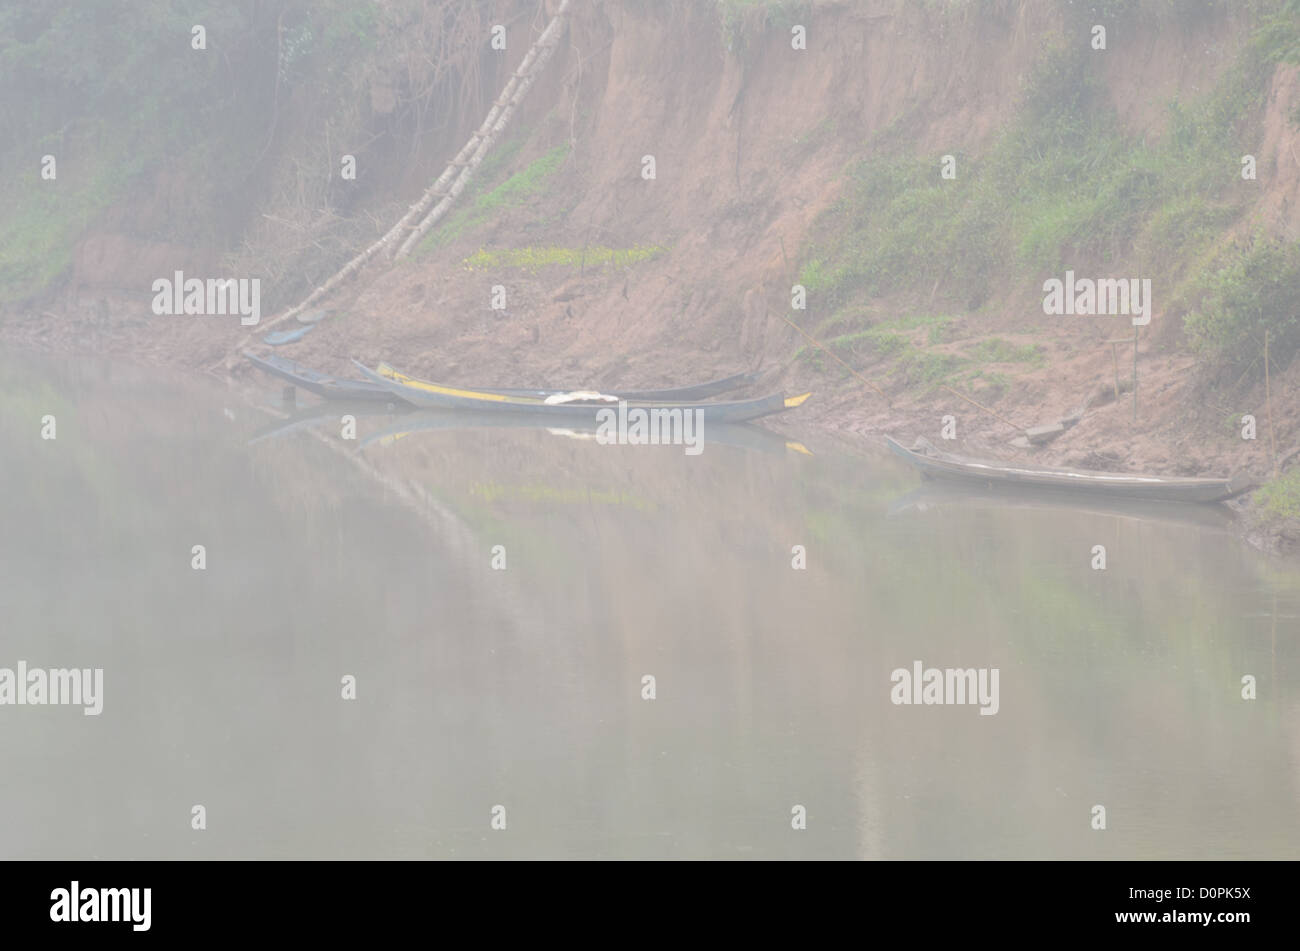 LUANG NAMTHA, Laos - Morning mists shroud and wooden boats on the shore of the River Tha (Nam Tha) in Luang Namtha - Stock Image